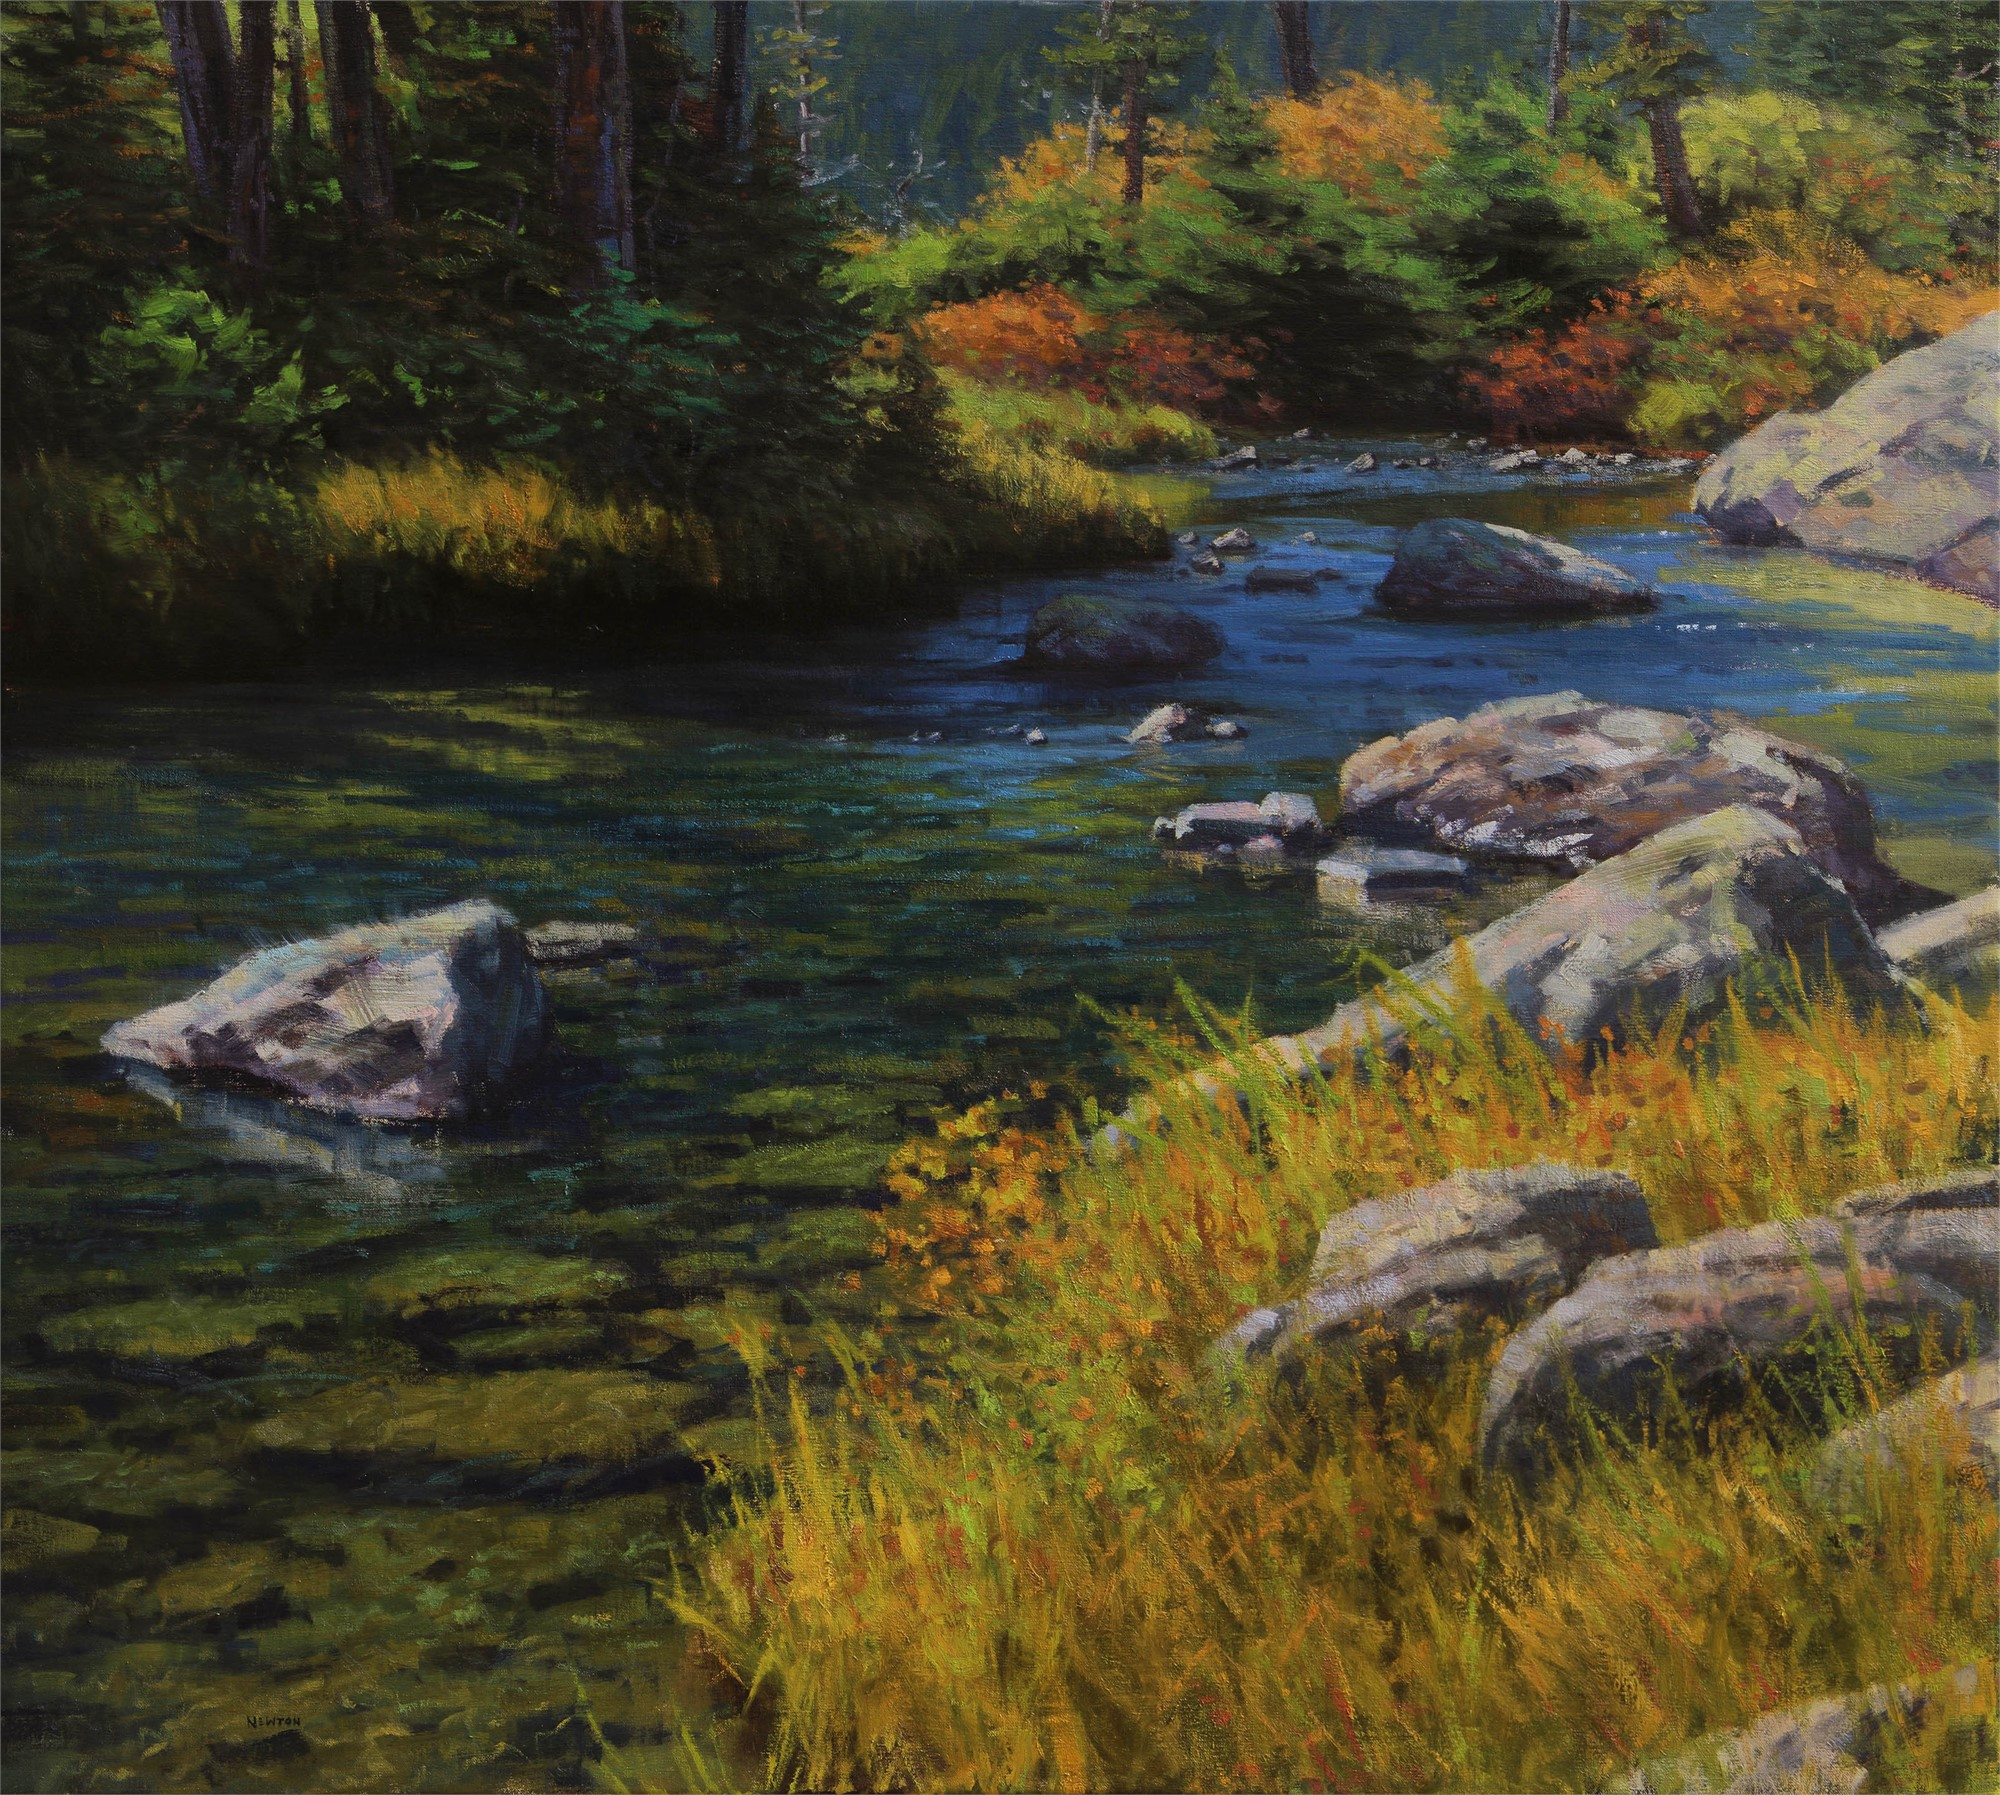 Upper Waters by Wes Newton